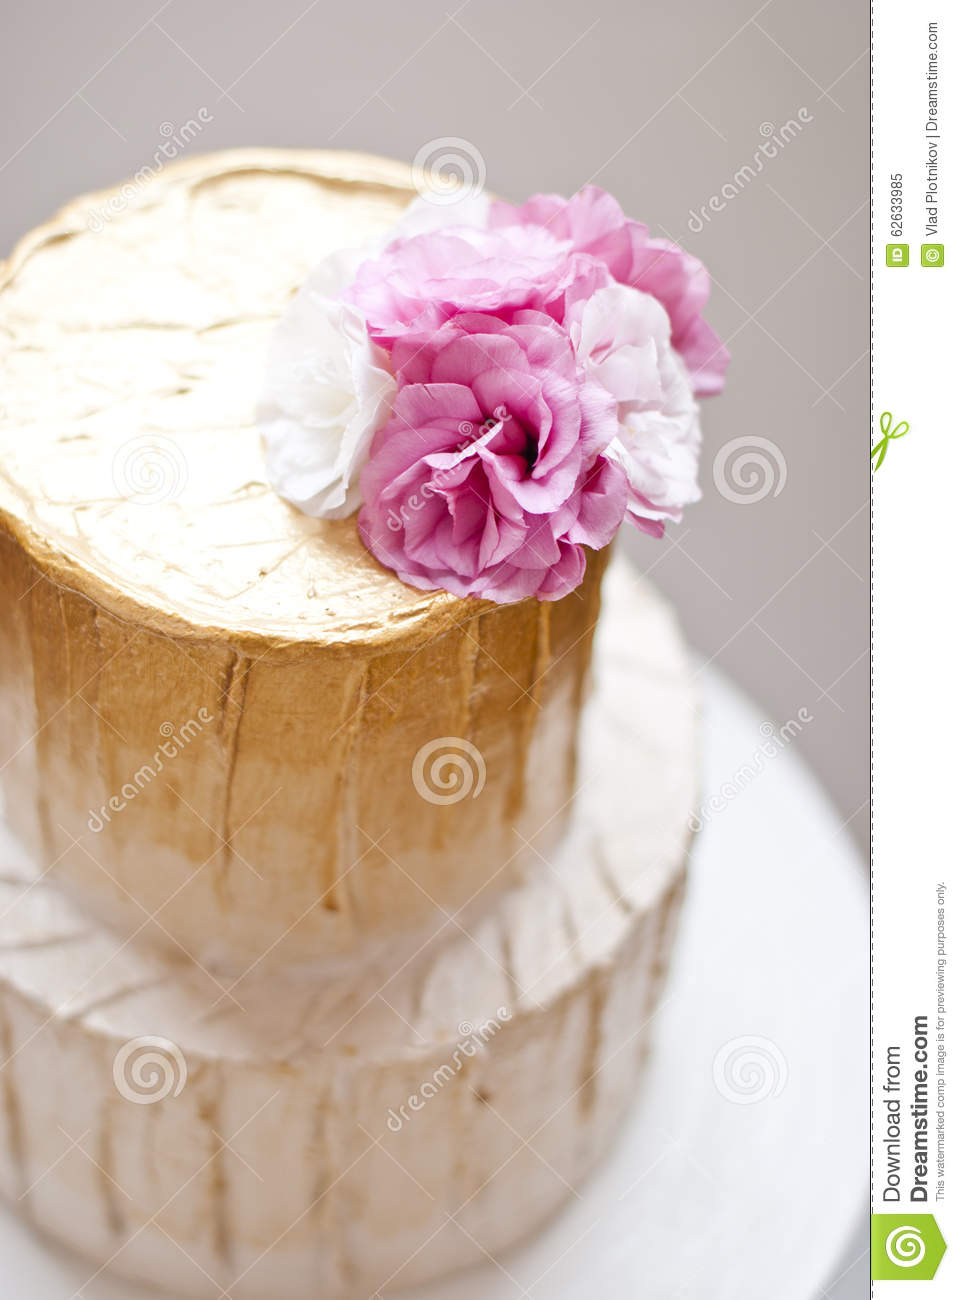 Gold and white wedding cake stock image image of setting cater download comp mightylinksfo